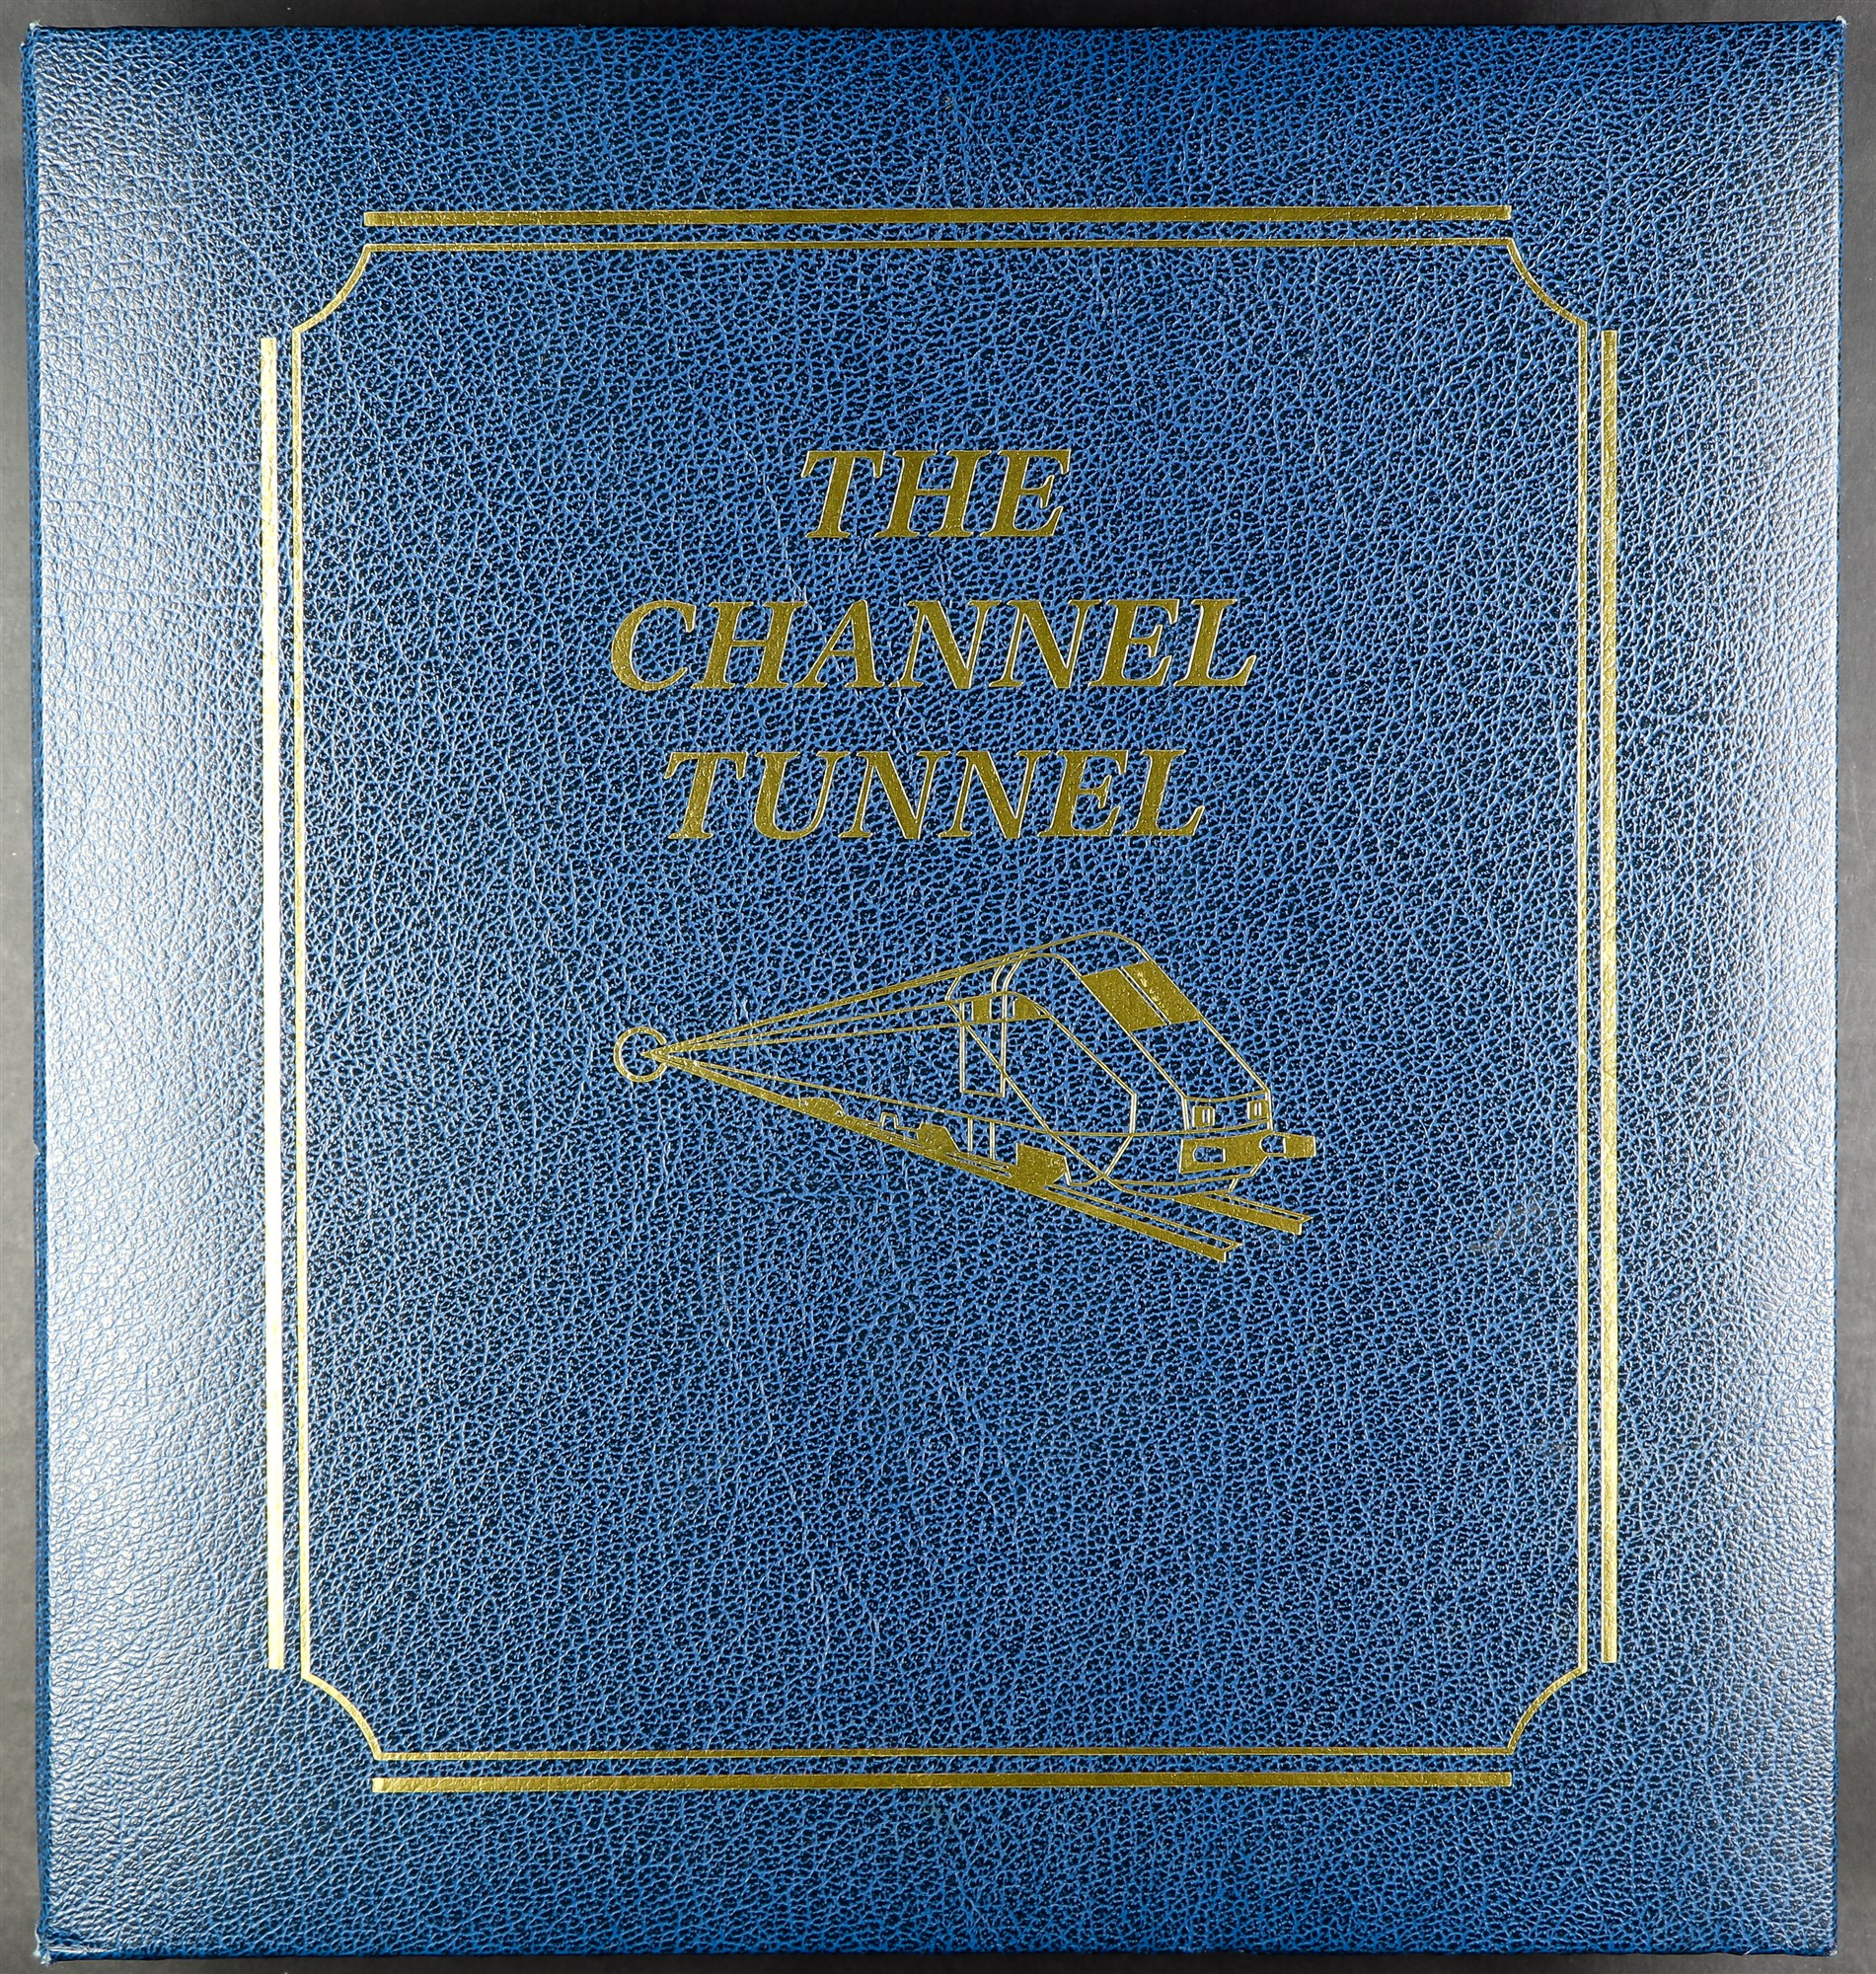 GREAT BRITAIN CHANNEL TUNNEL 1994-2001 BENHAM COVERS COLLECTION in an album, all different. (45 - Image 4 of 5